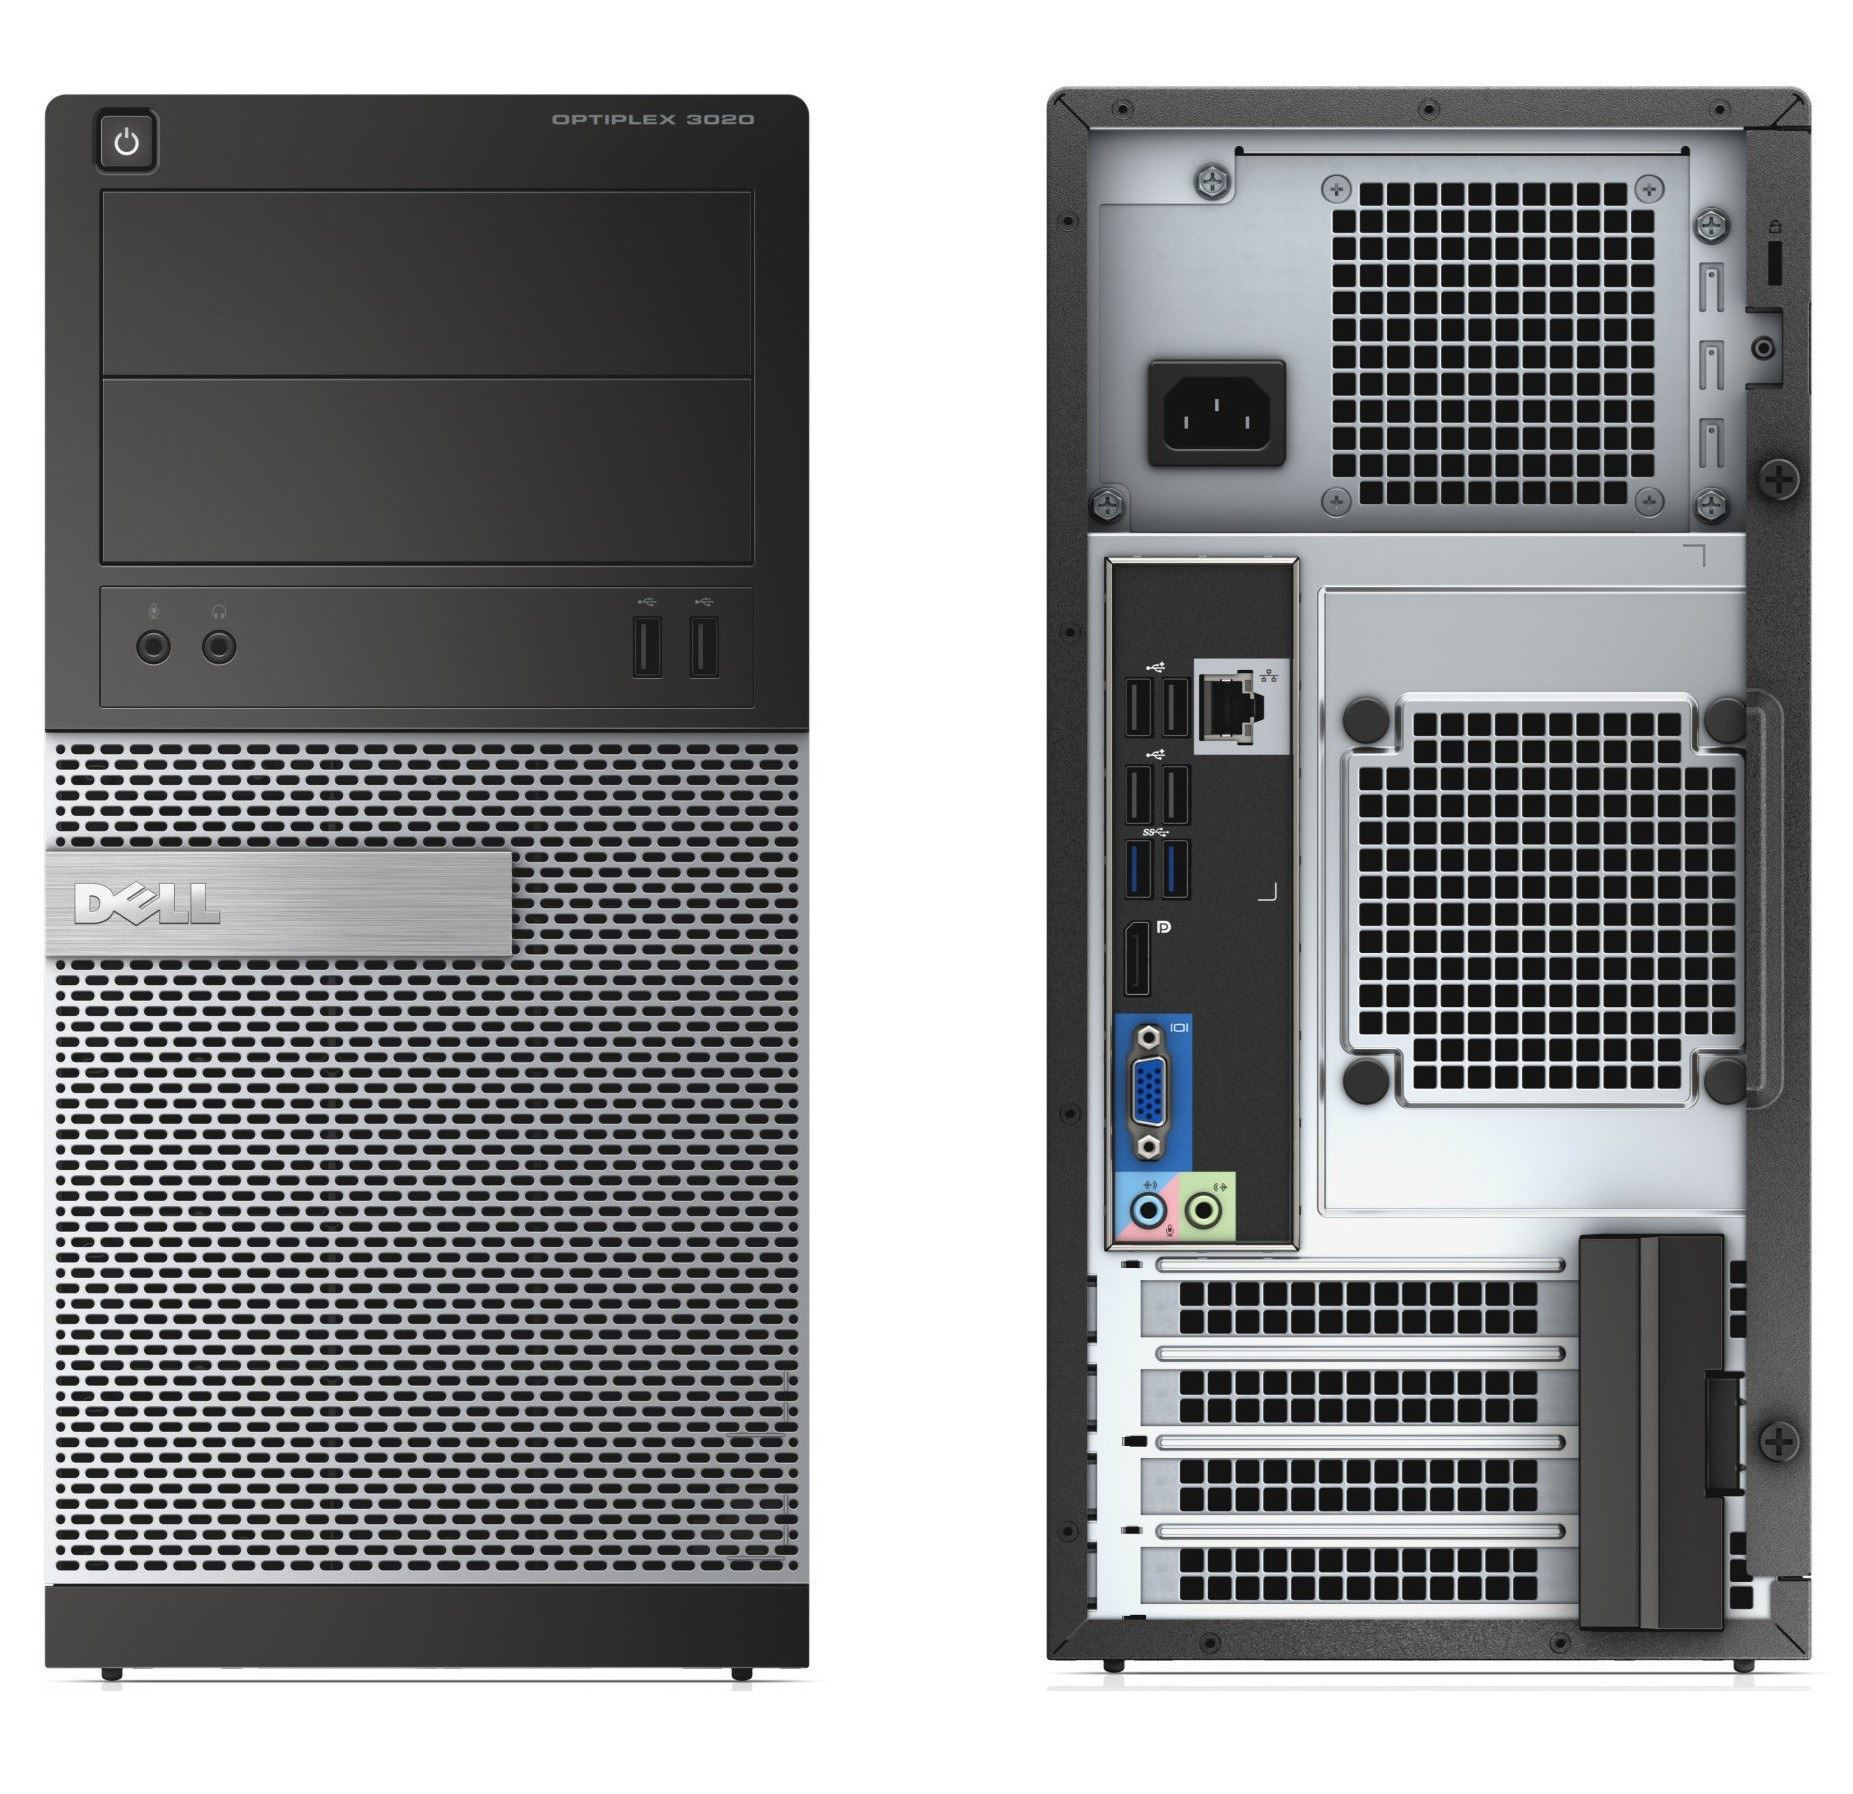 DELL OPTIPLEX 3020 Mini Tower i5 - Astringo